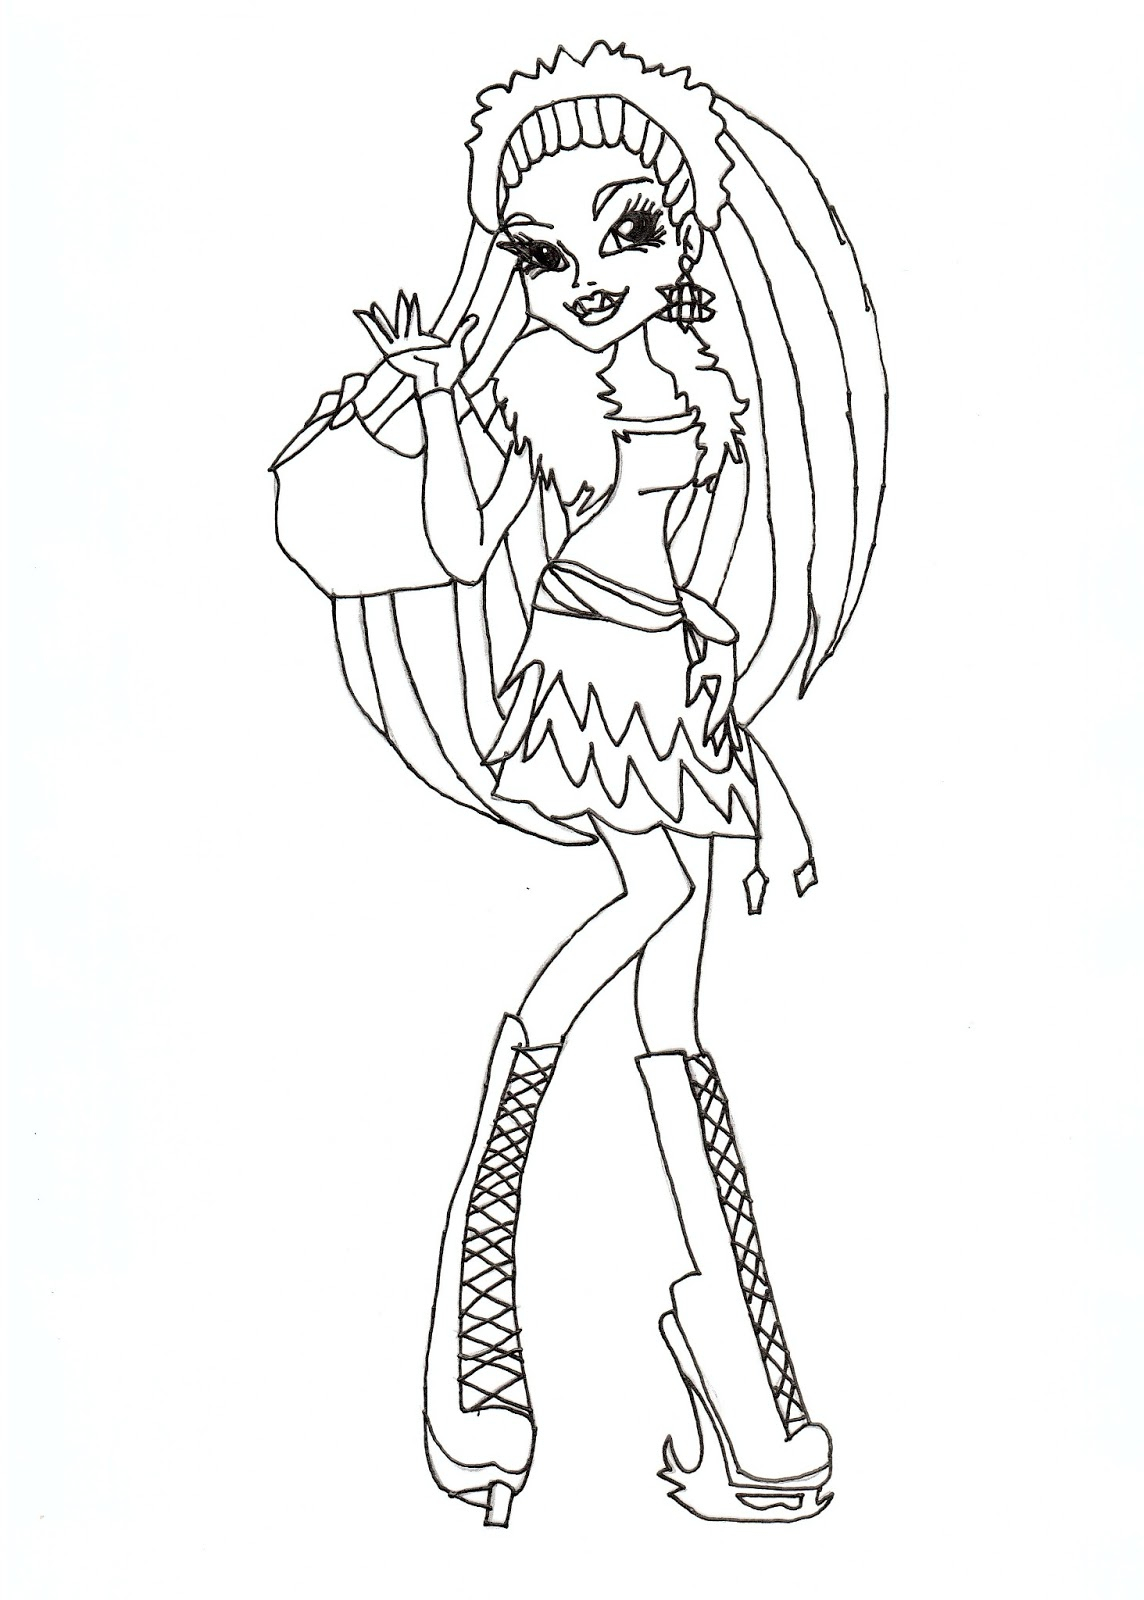 Inspiring Idea Monster High Coloring Pages 2 to Print Color Printable Of Exquisite Monster High Printables Coloring Pages Free Gallery